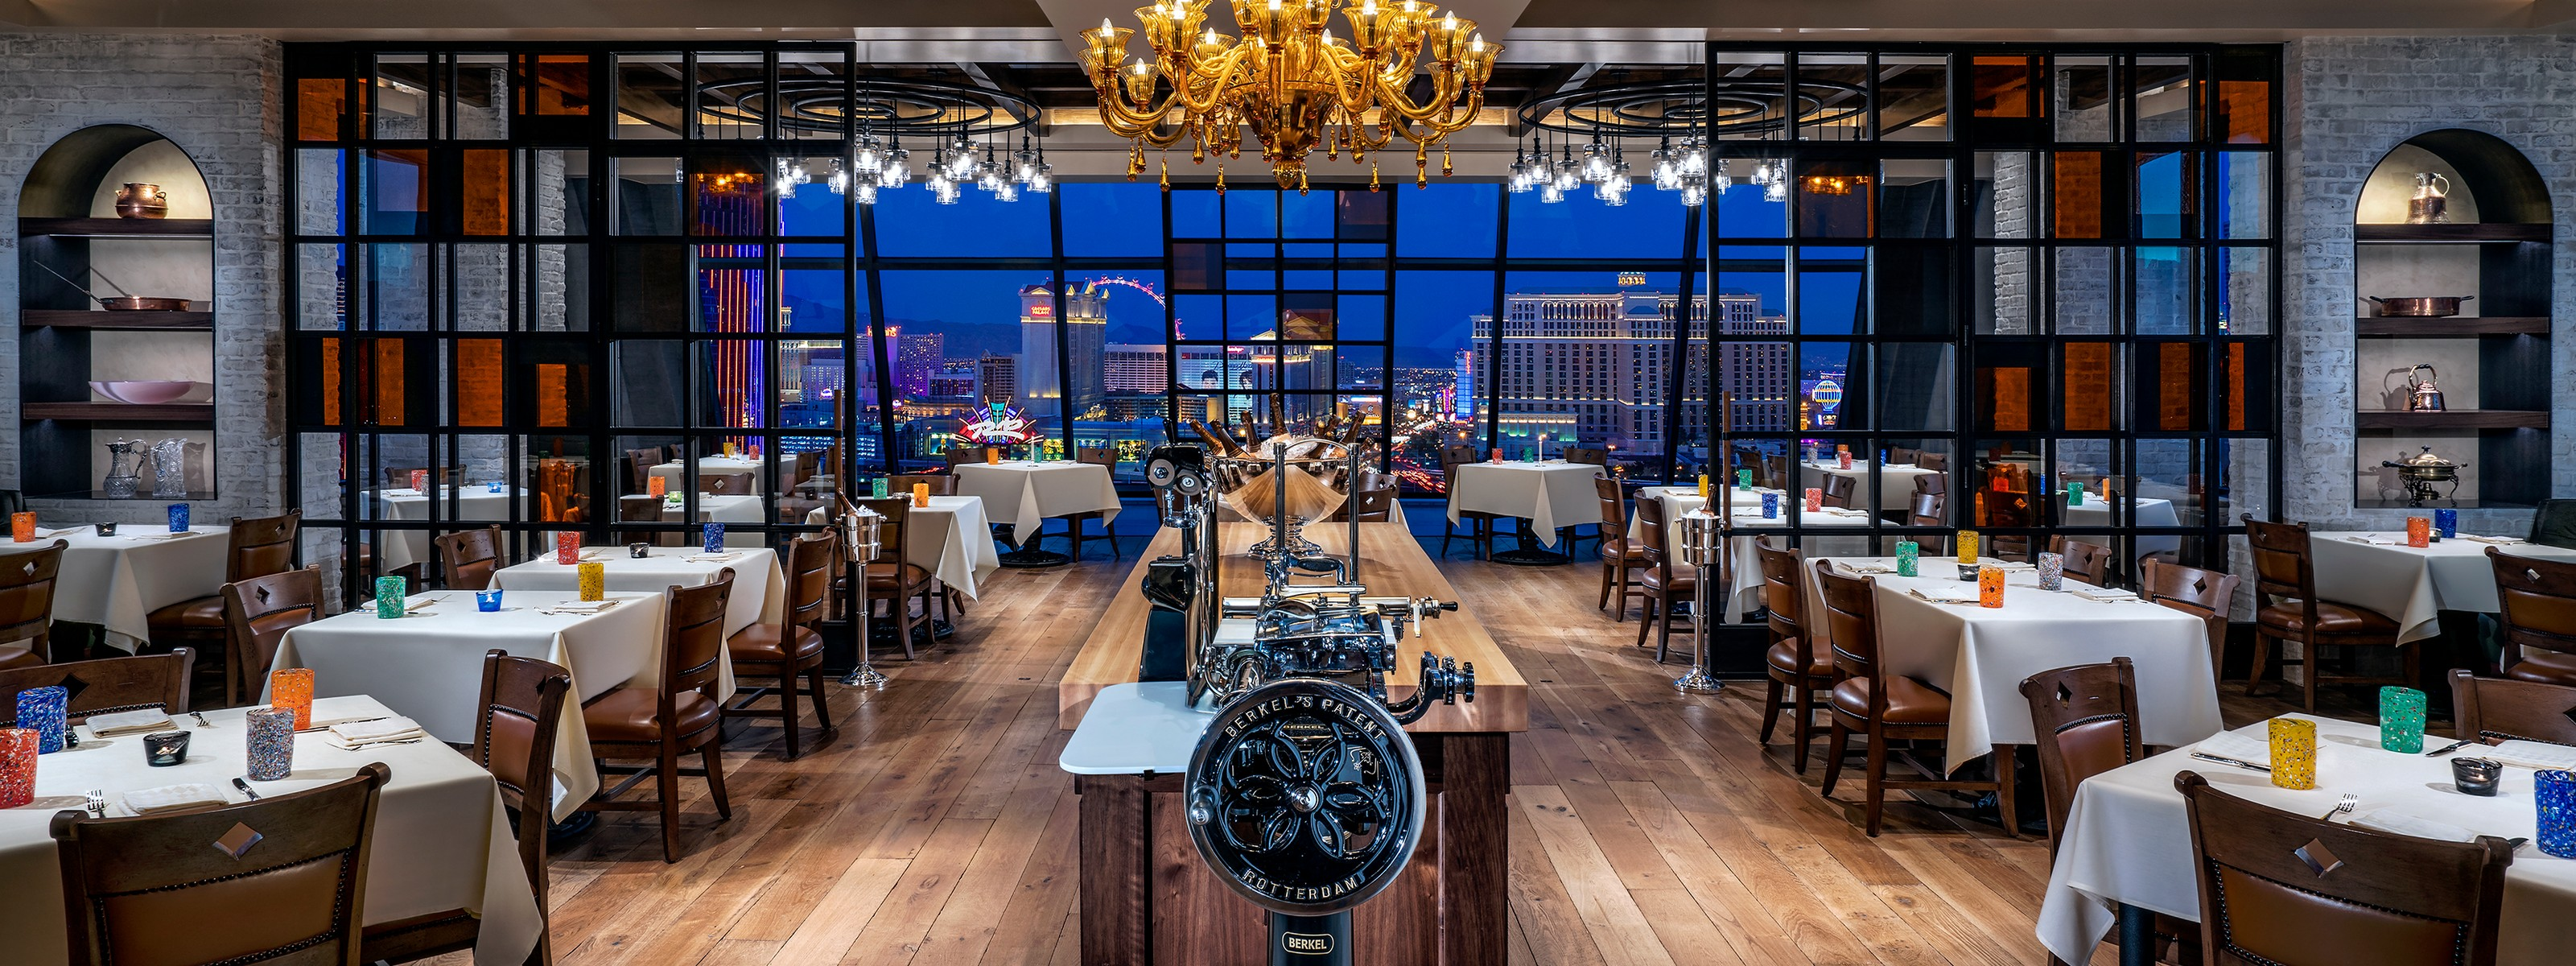 Vetro Cucina Rex Vetri Cucina The Strip Las Vegas The Infatuation